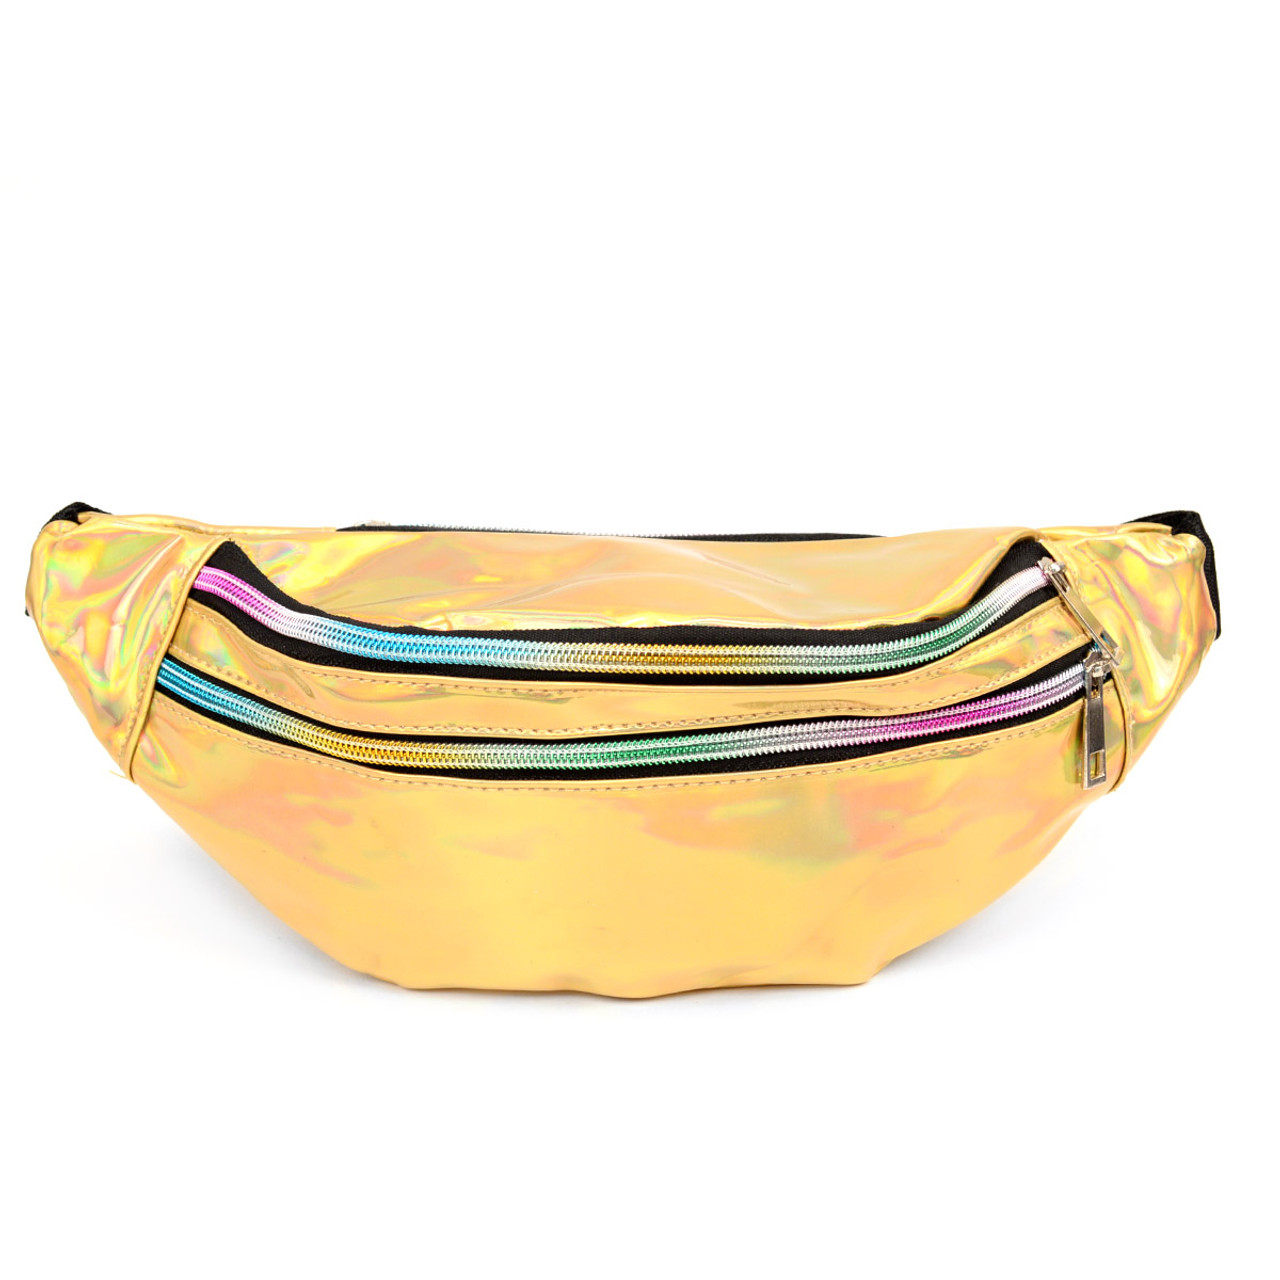 9d17c22be2ad Gold Iridescent Holographic Waist Fanny Pack - LFBG1301